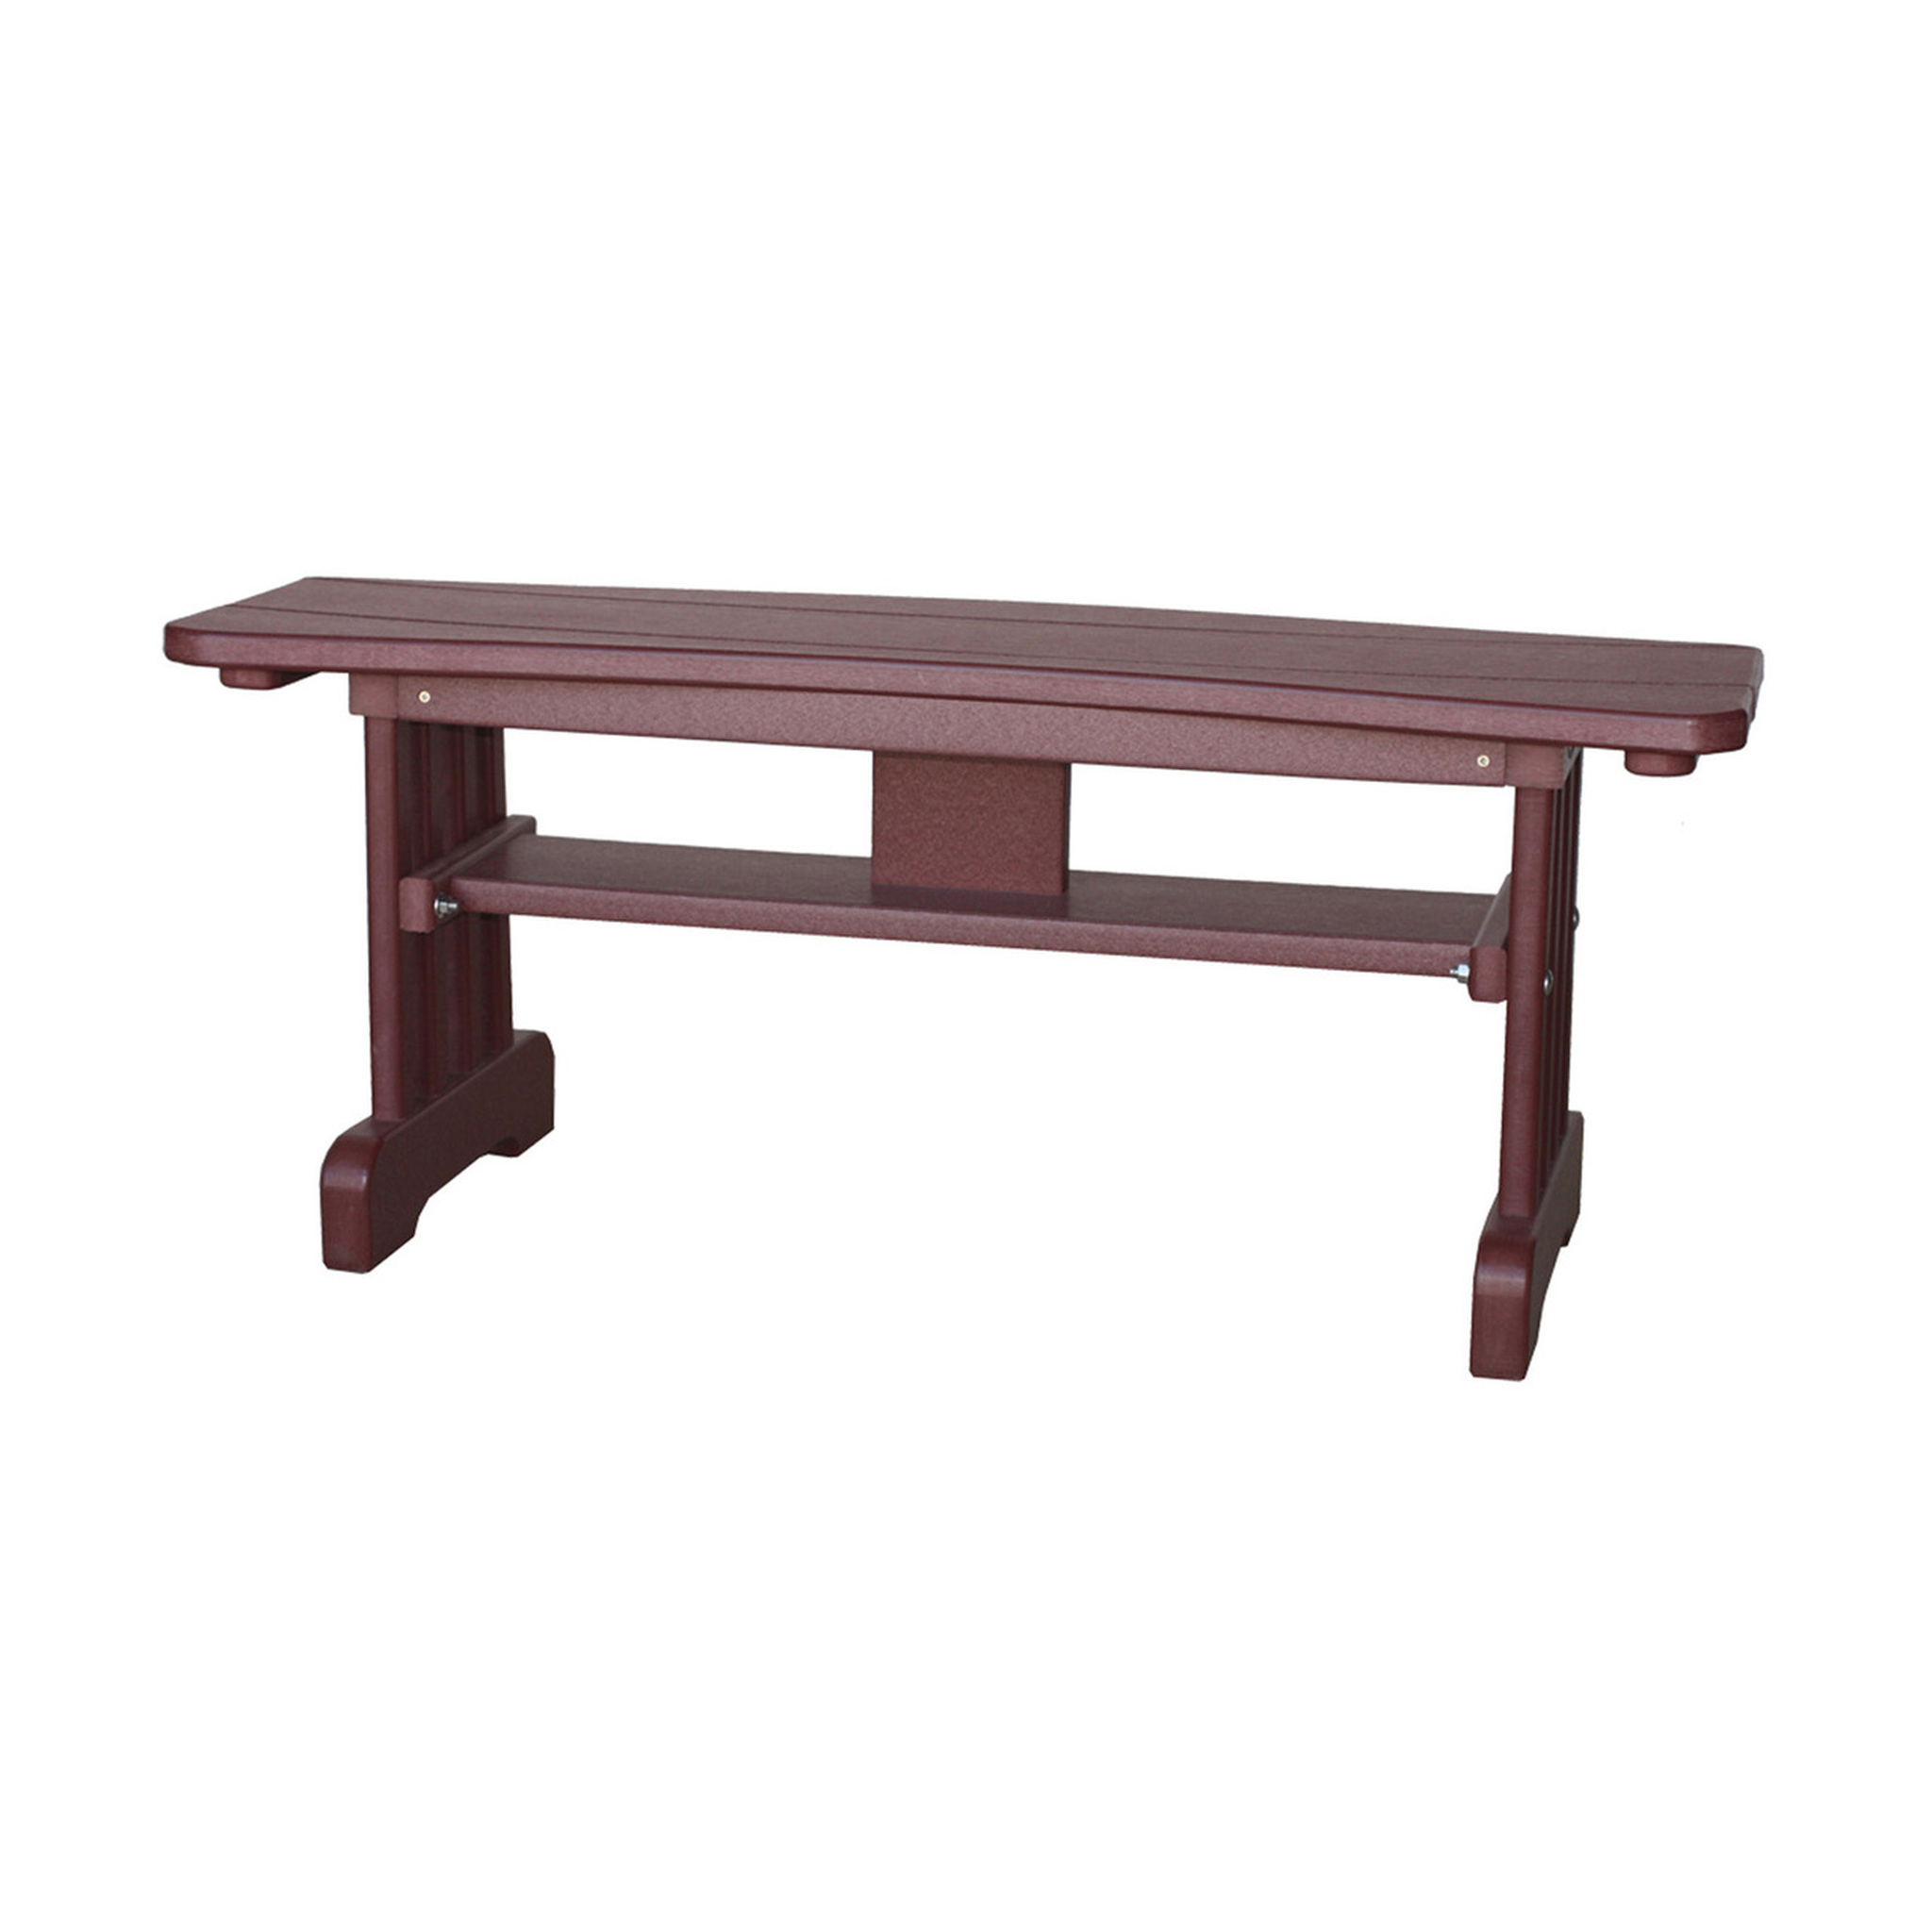 Awesome Polywood Dining Bench Gamerscity Chair Design For Home Gamerscityorg